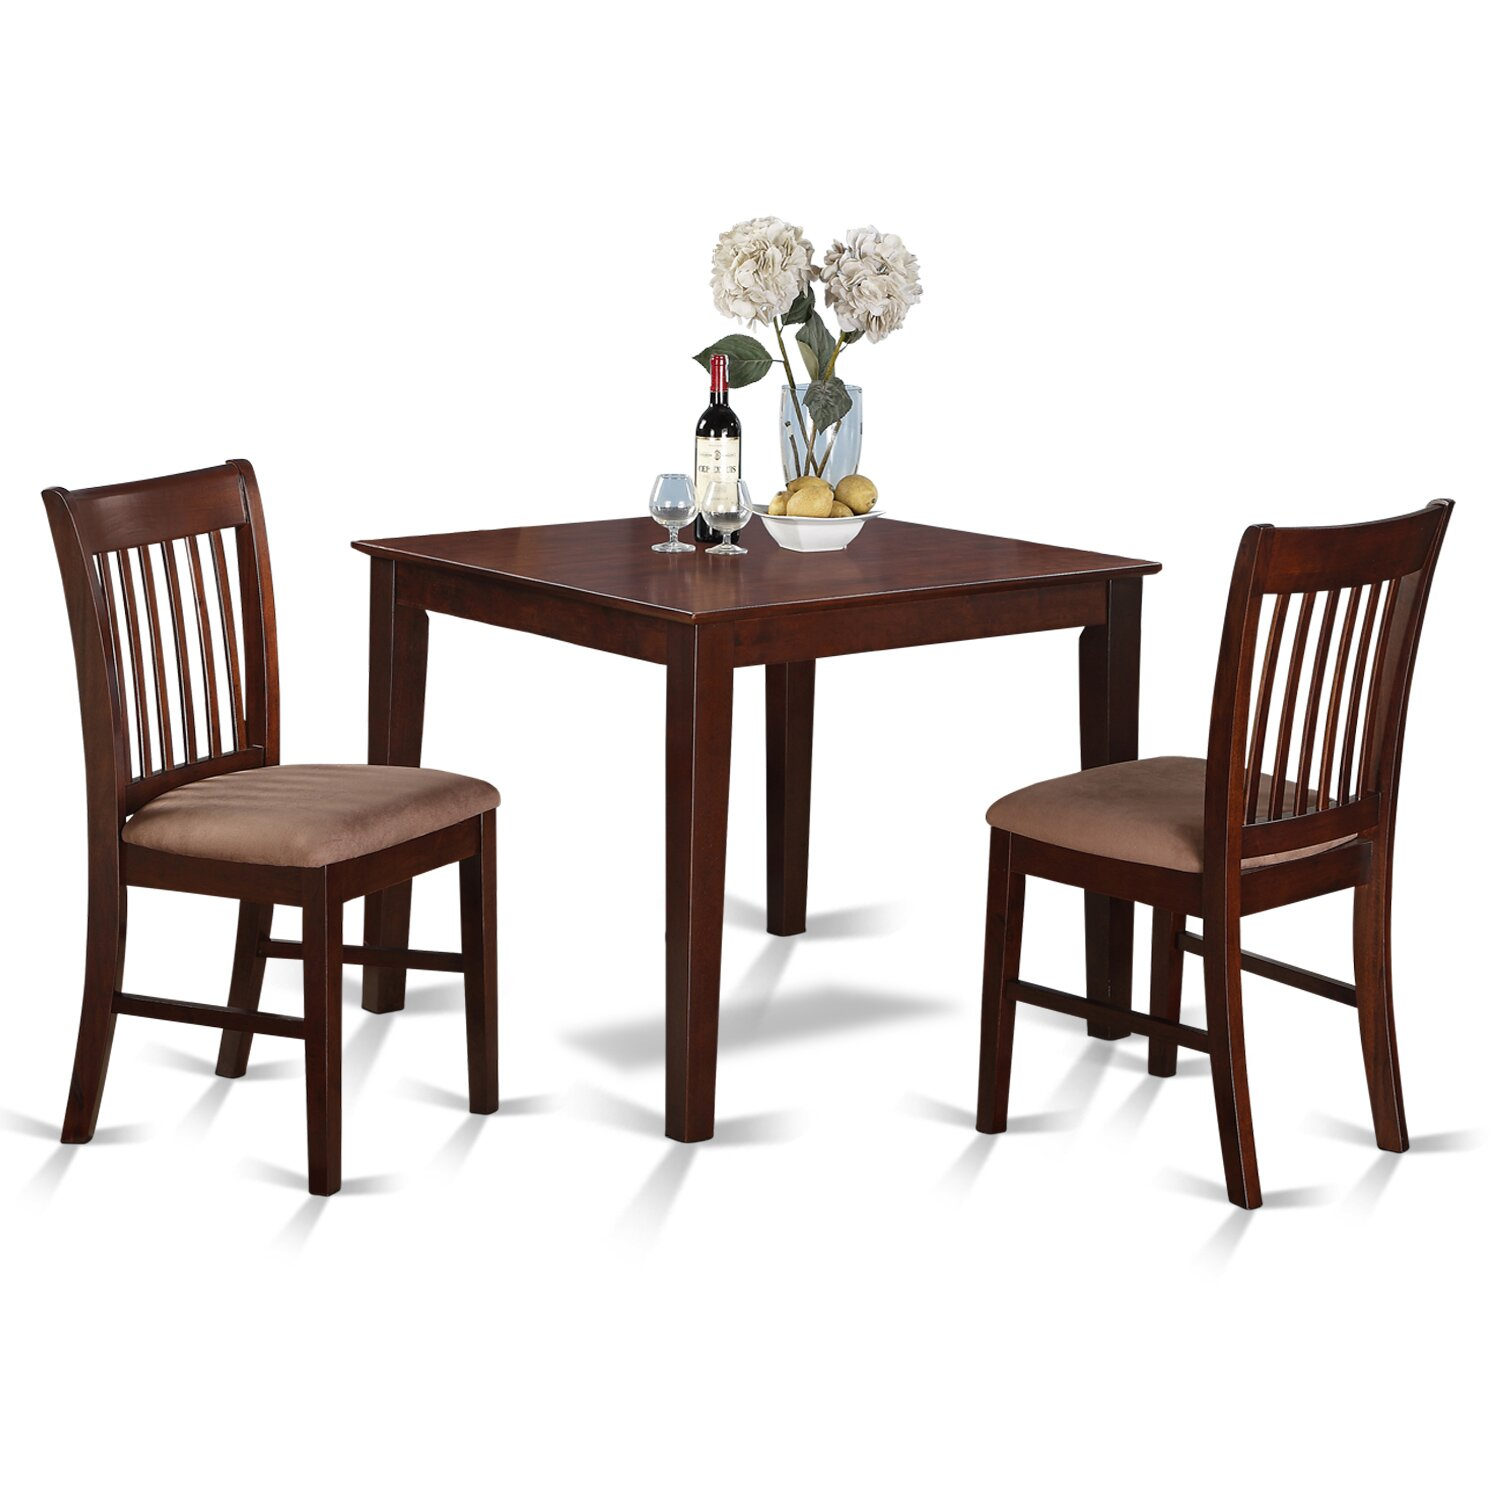 East west oxford 3 piece dining set reviews wayfair for Small kitchen tables for two